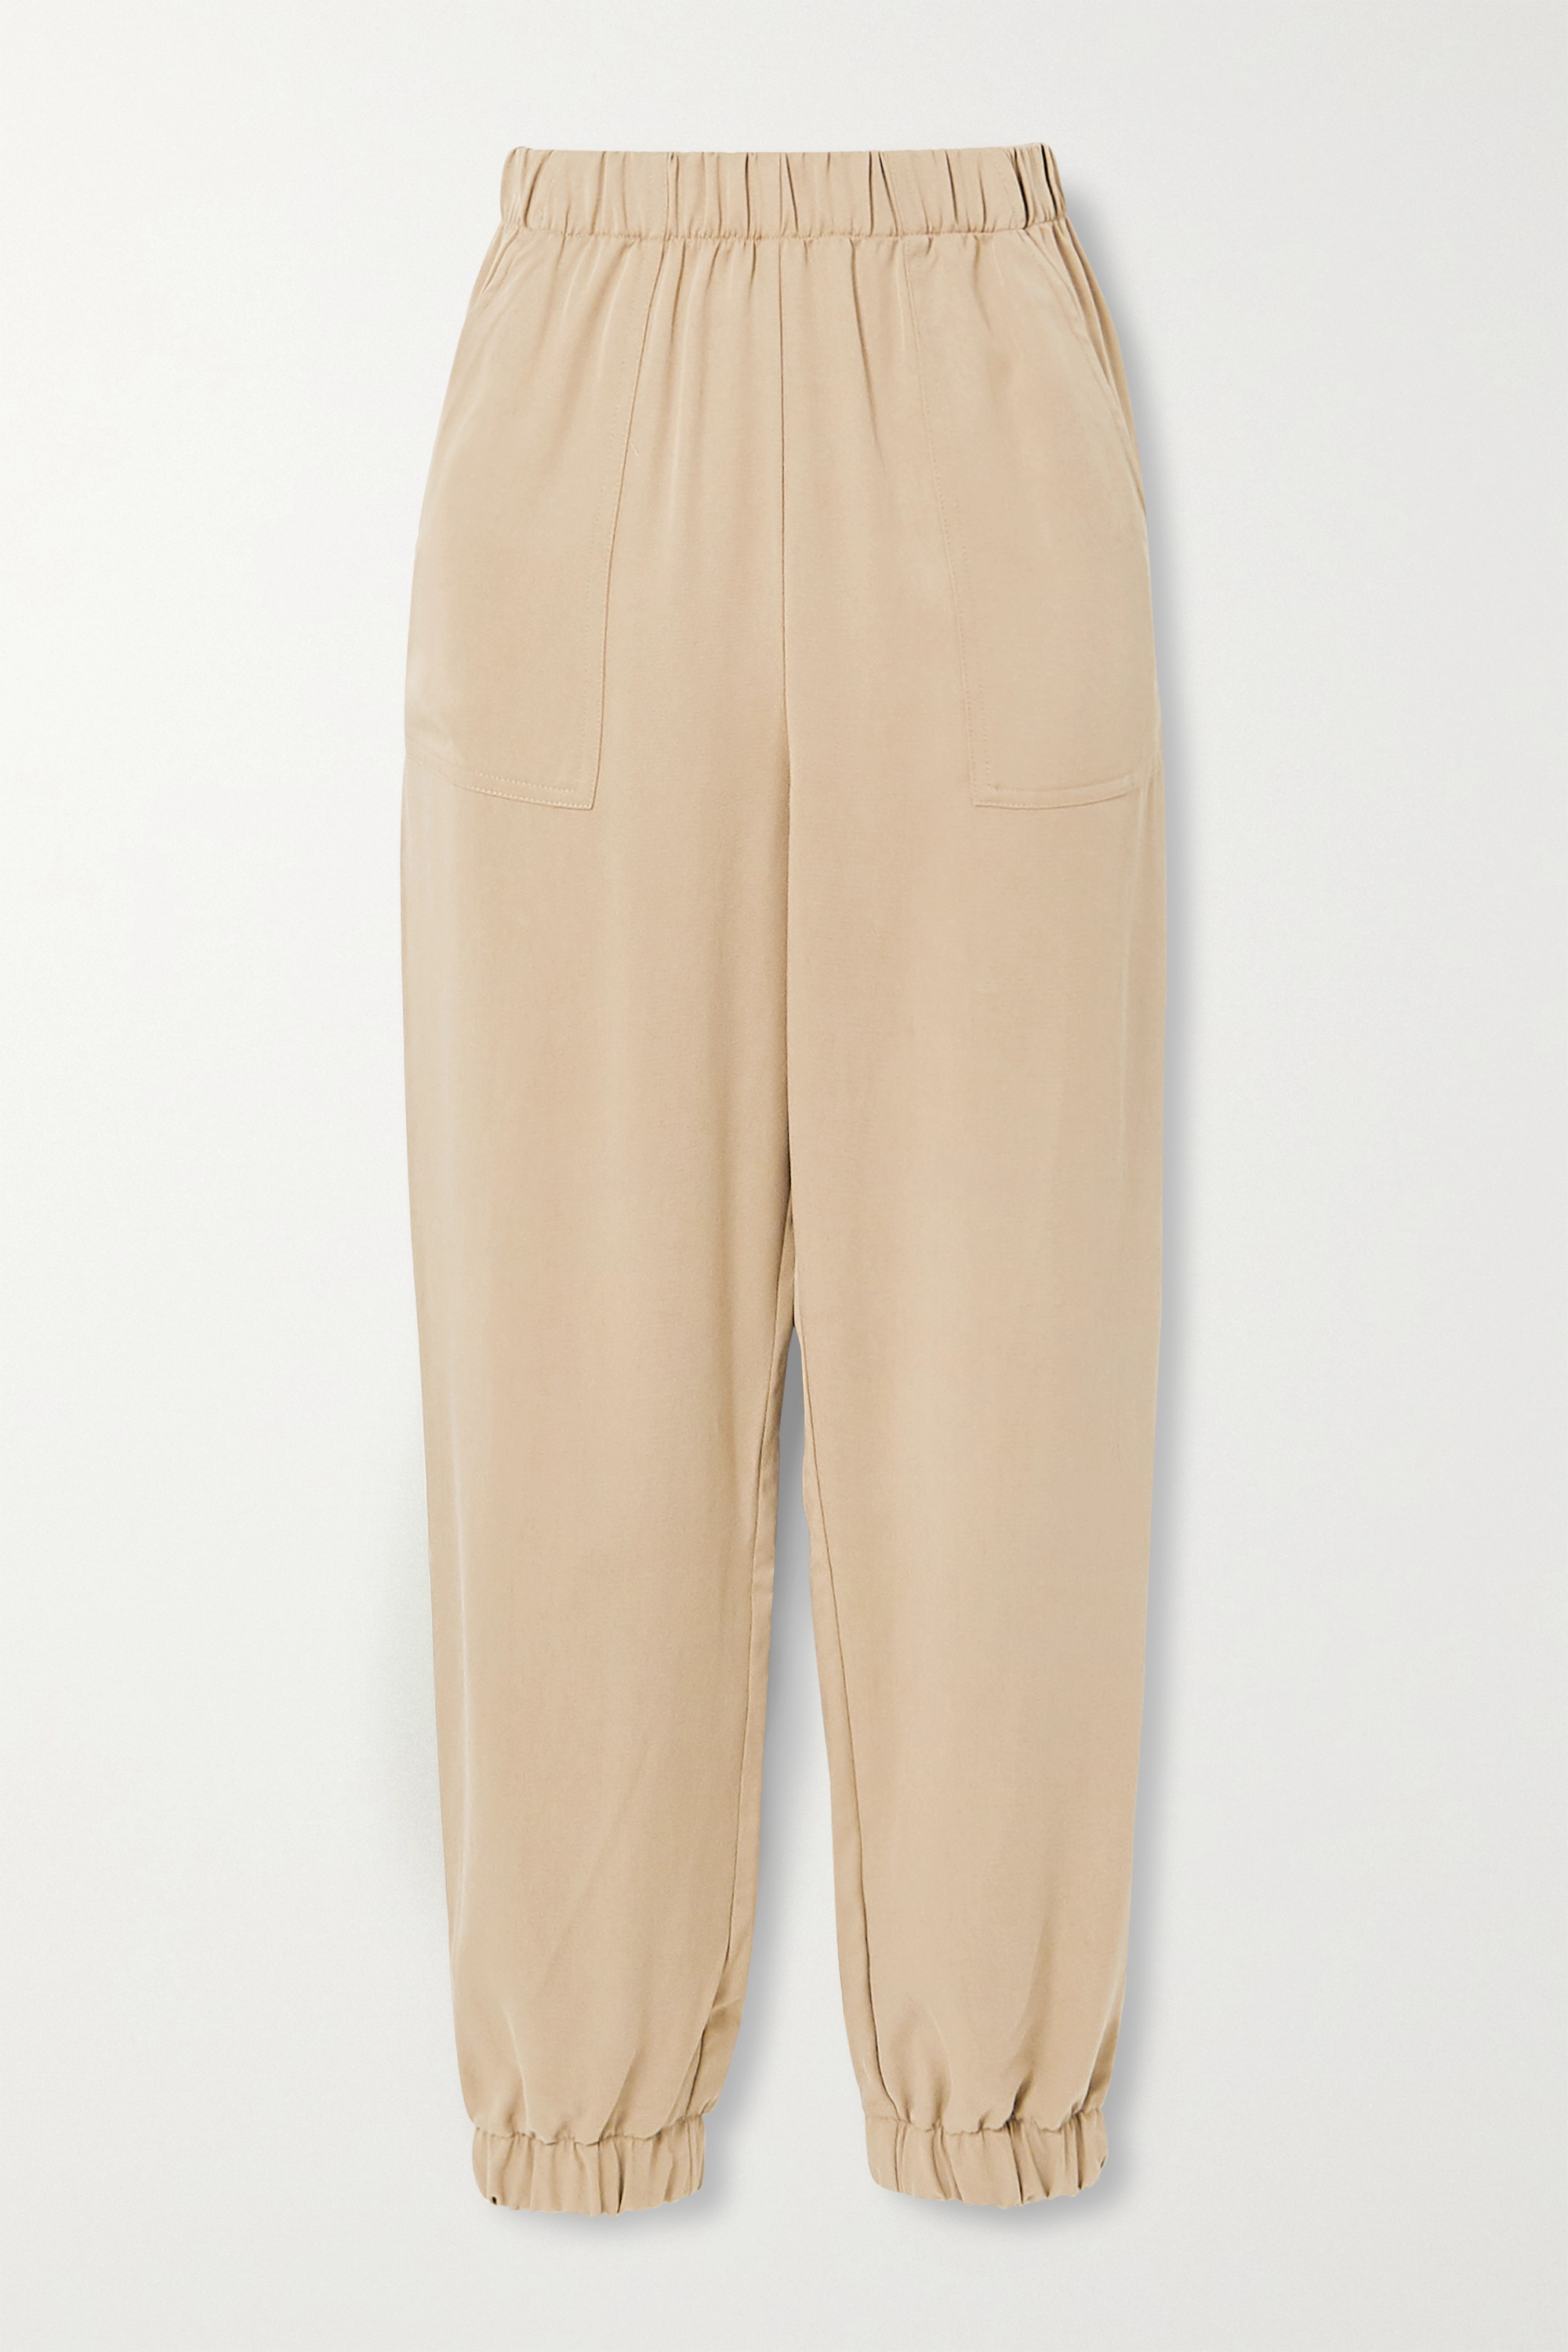 Sand Montana Tencel Twill Tapered Pants Reformation Net A Porter